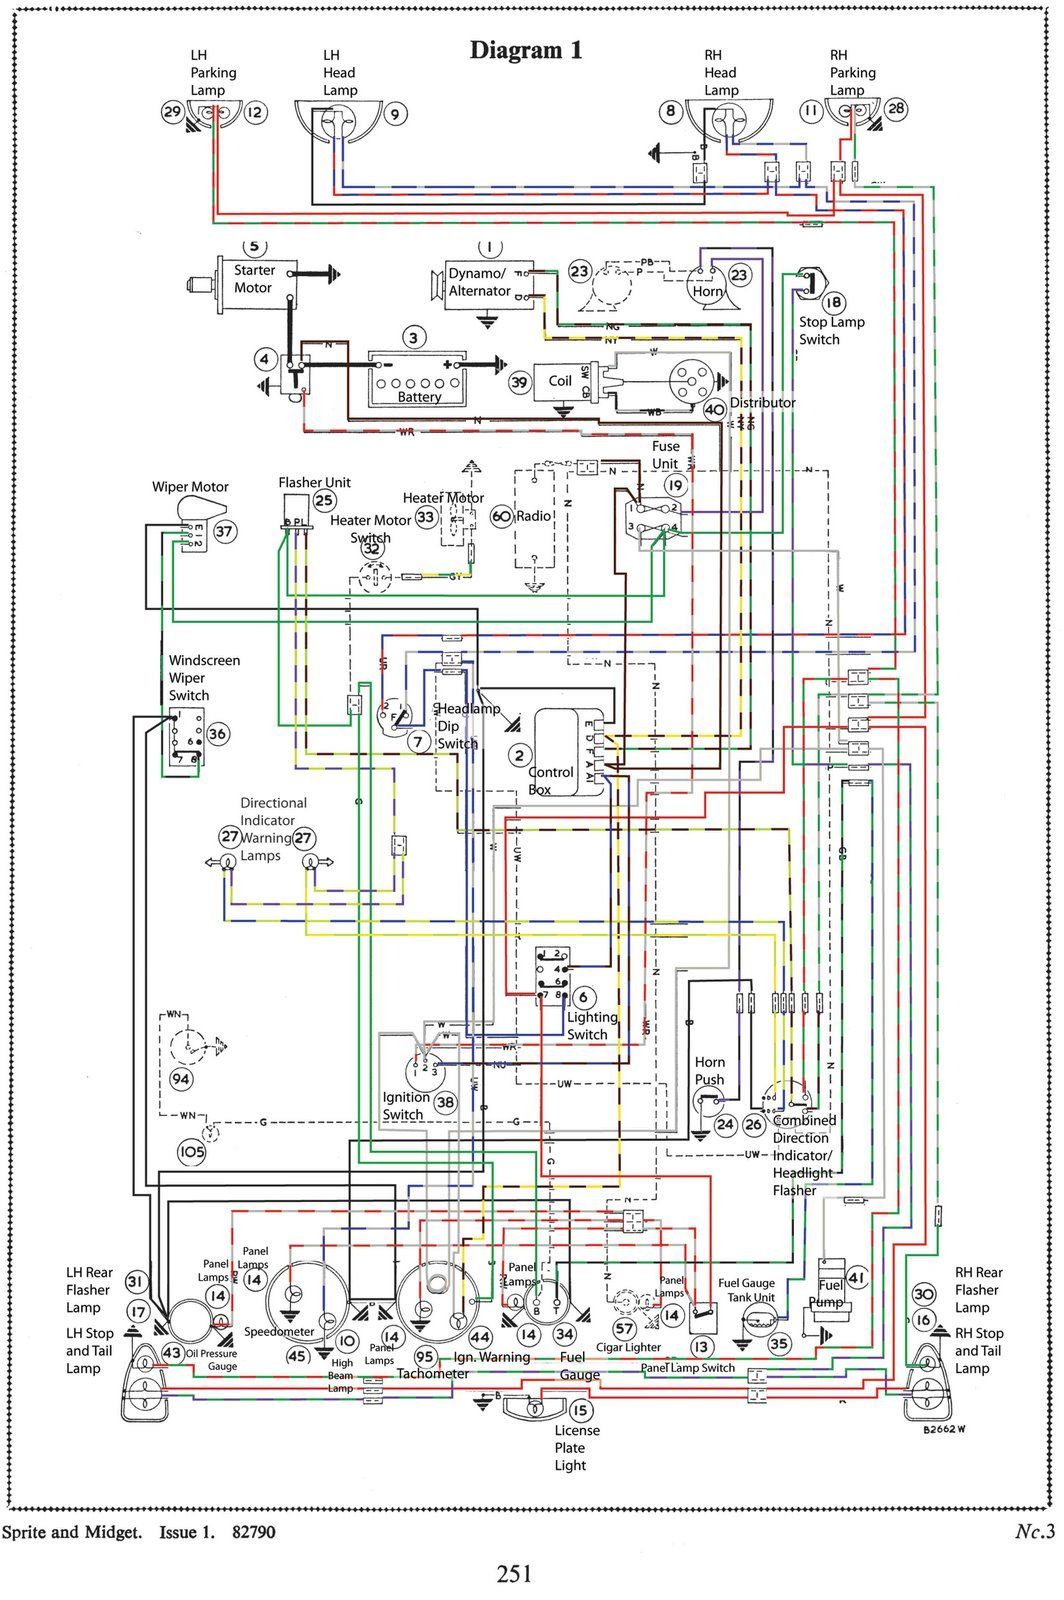 Mk3 Sprite wiring diagram | Austin Healey Sprite & MG